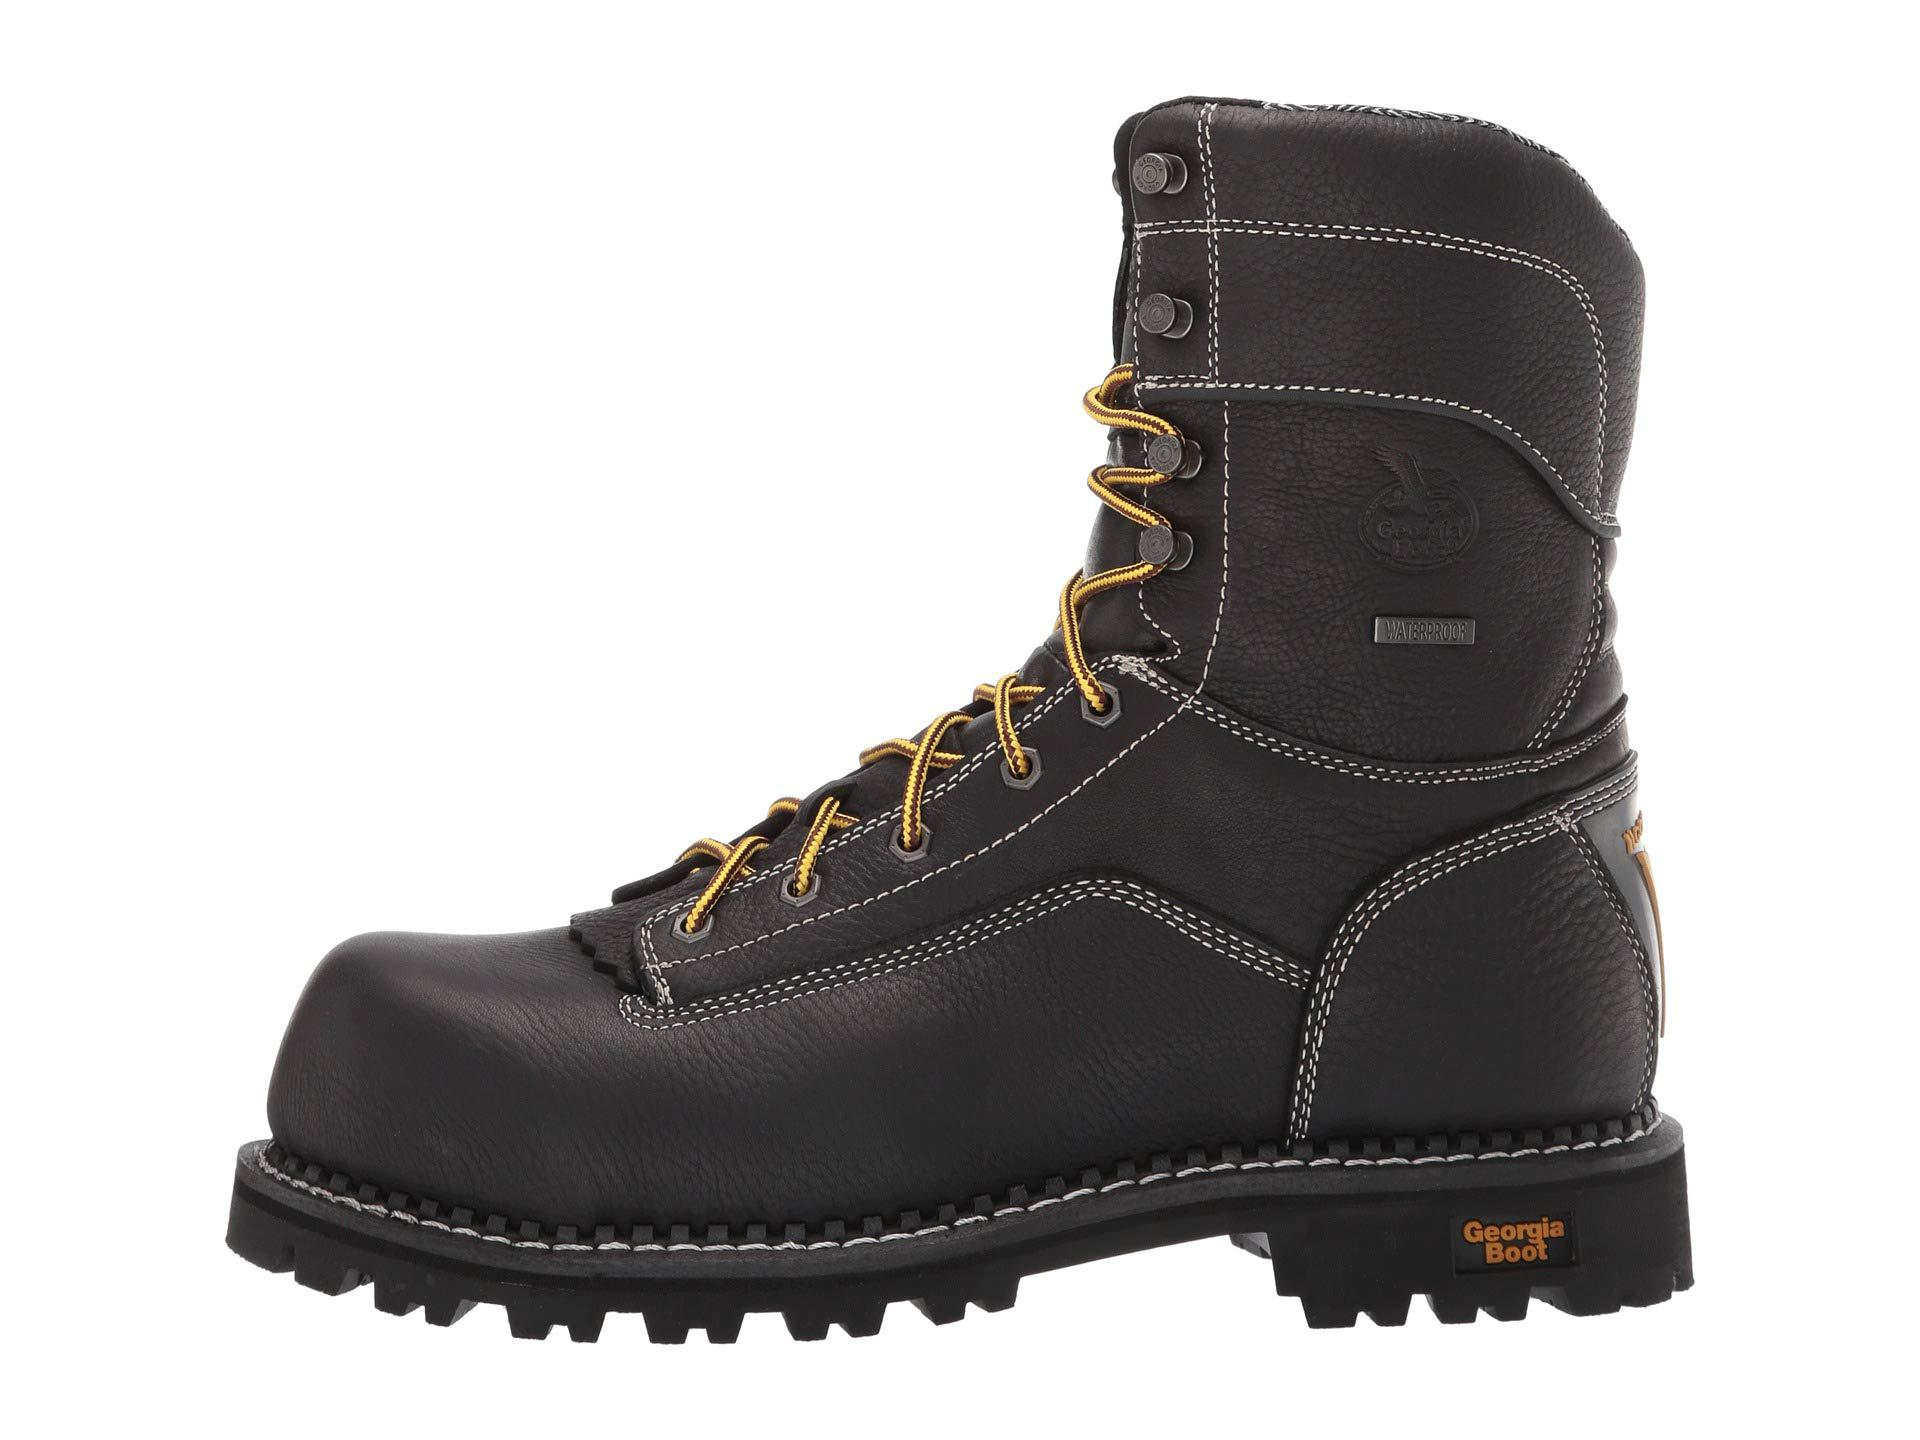 53b3de1d061 Low Heel Logger 9 Comp Toe Waterproof (black) Men's Work Boots